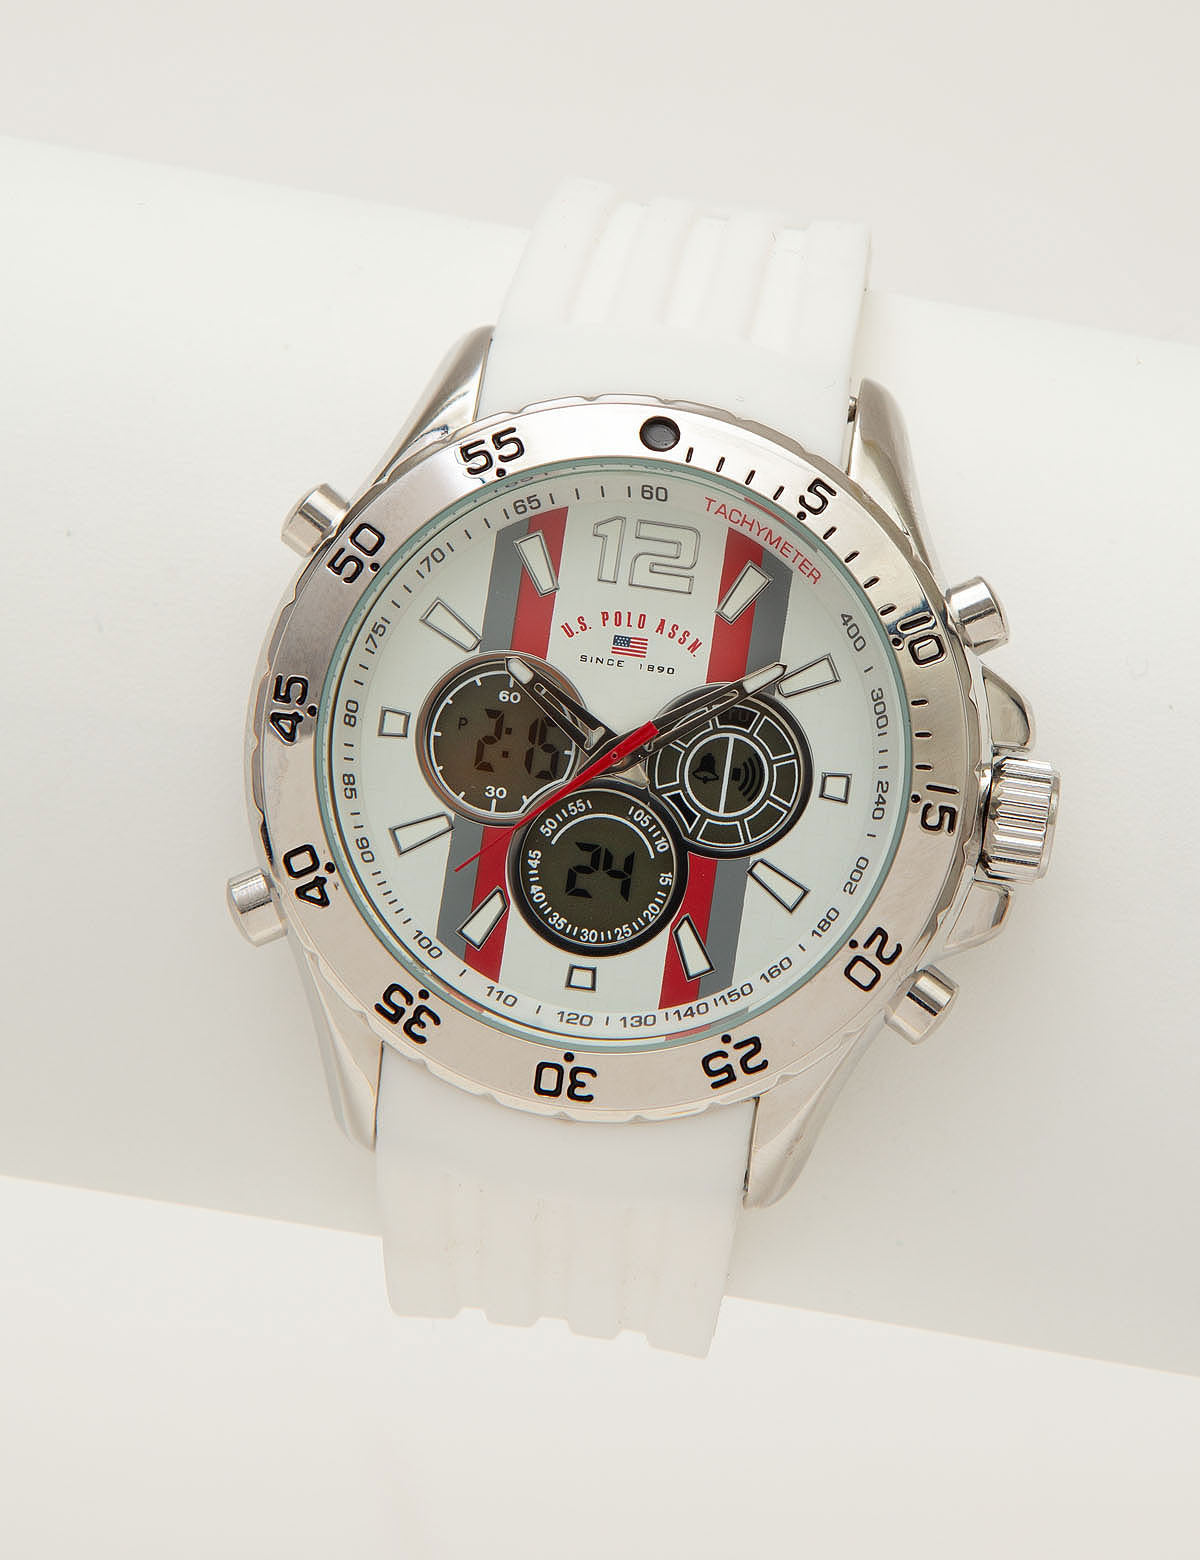 MEN'S WHITE ANA DIGI SPORT WATCH - U.S. Polo Assn.